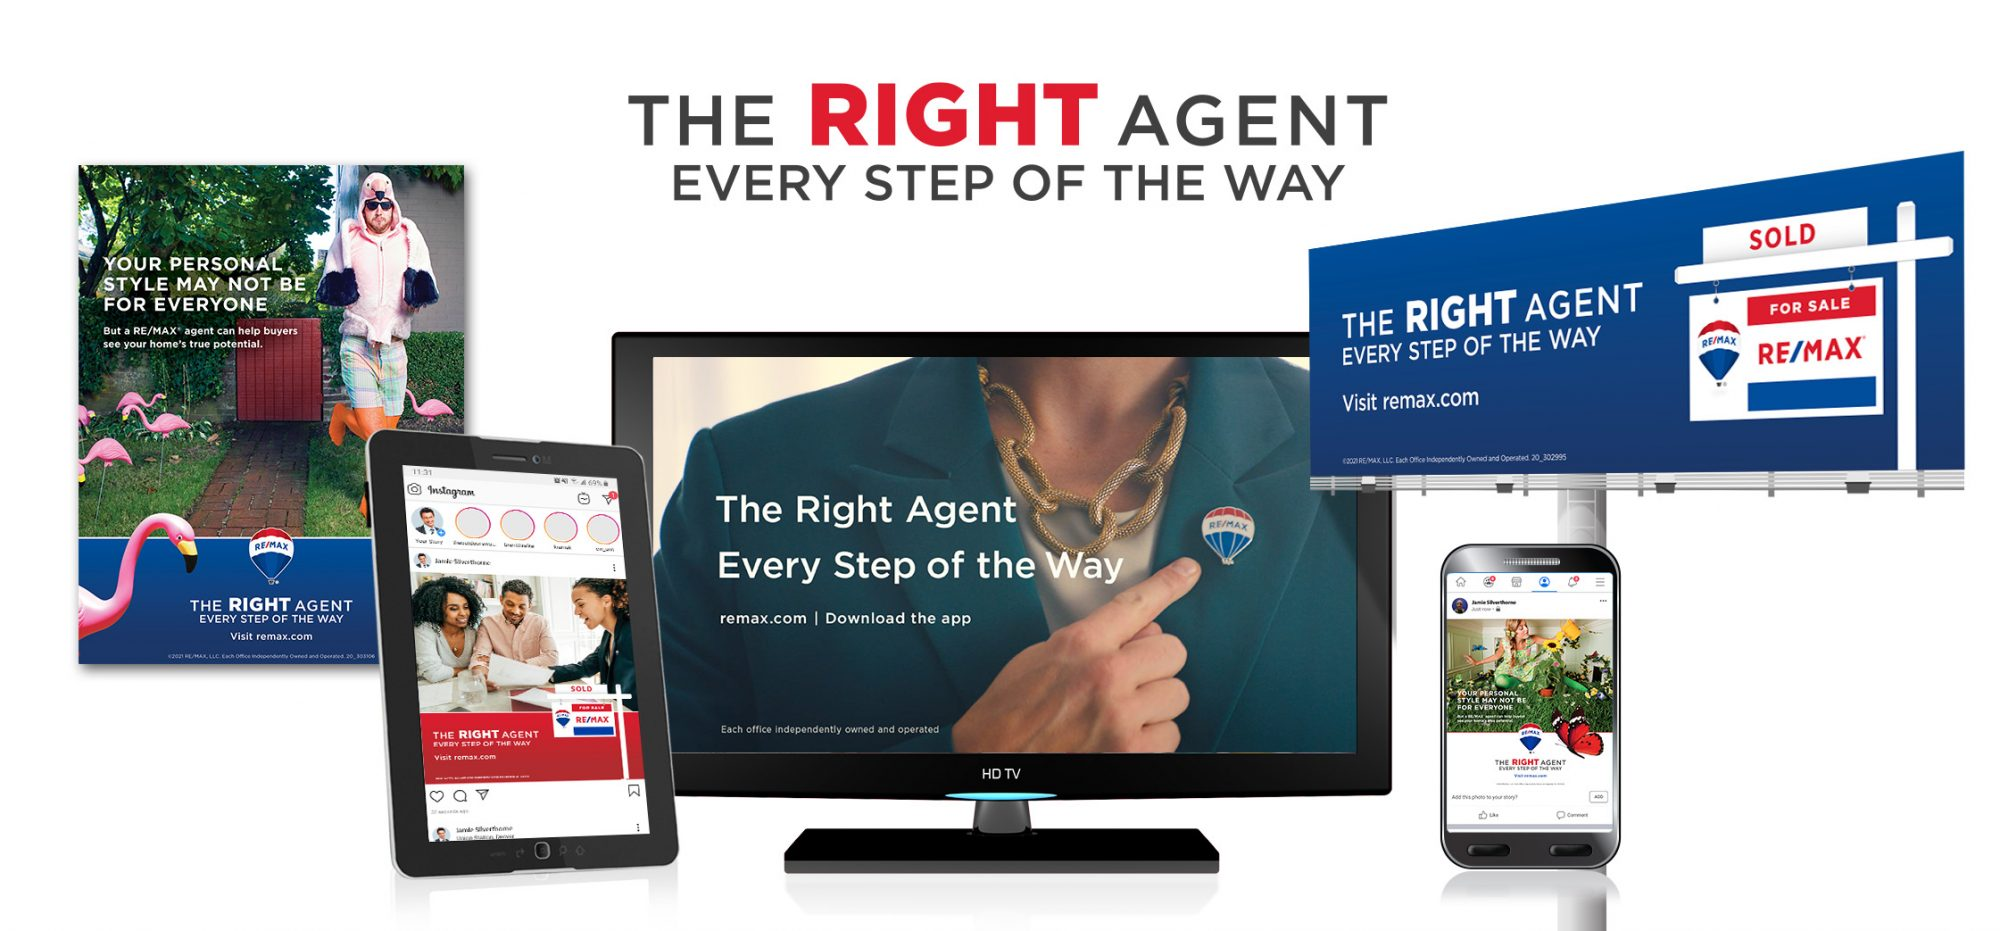 Why buy with a RE/MAX Agent?